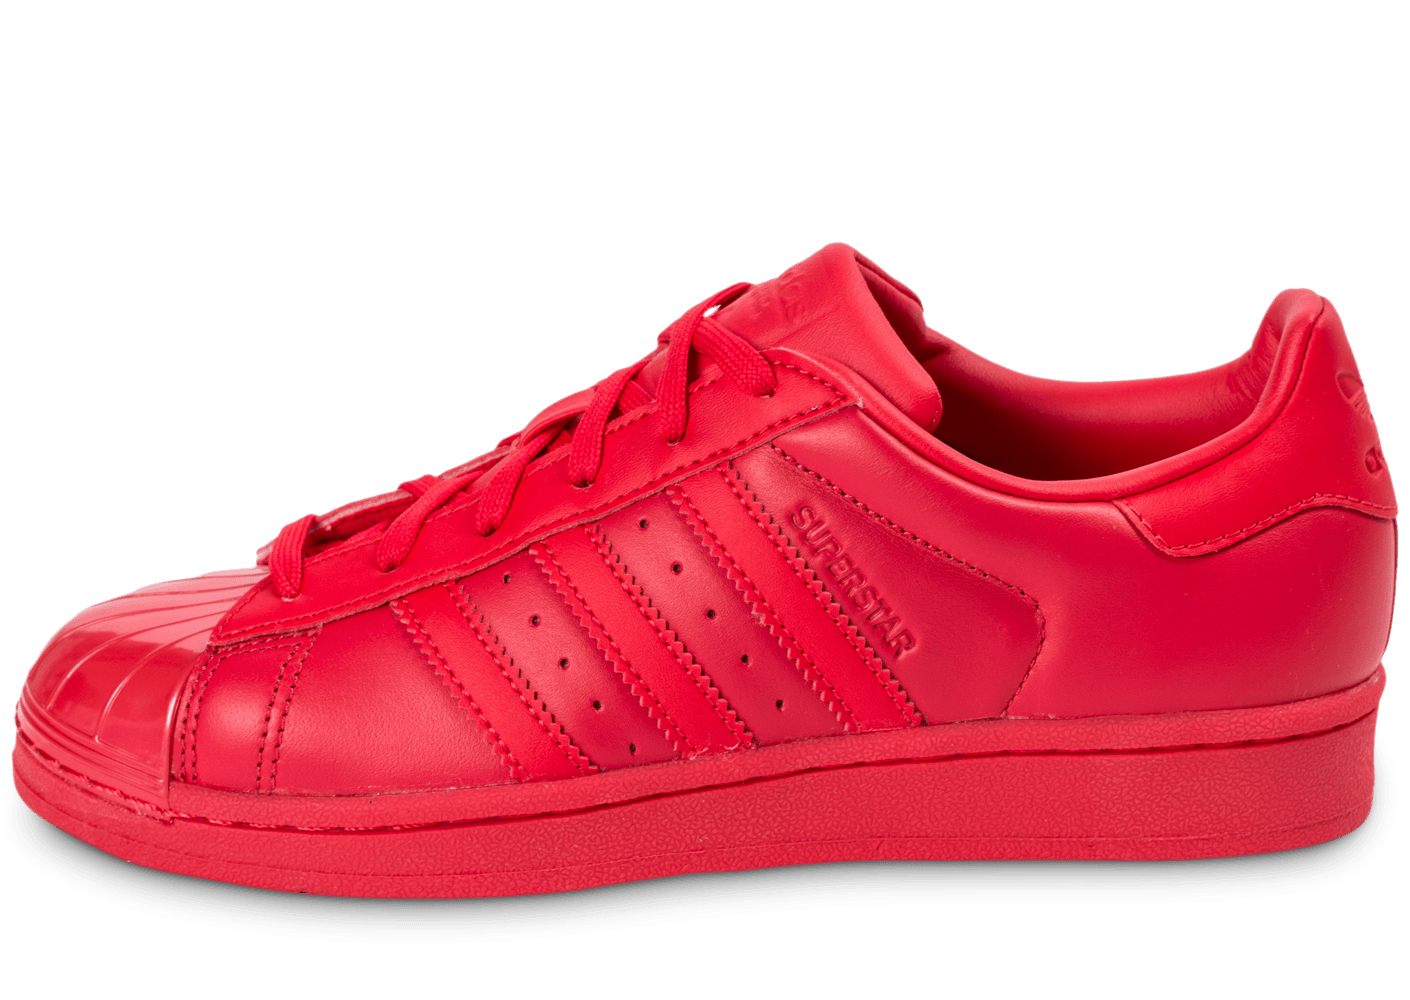 adidas superstar glossy toe rouge chaussures adidas. Black Bedroom Furniture Sets. Home Design Ideas